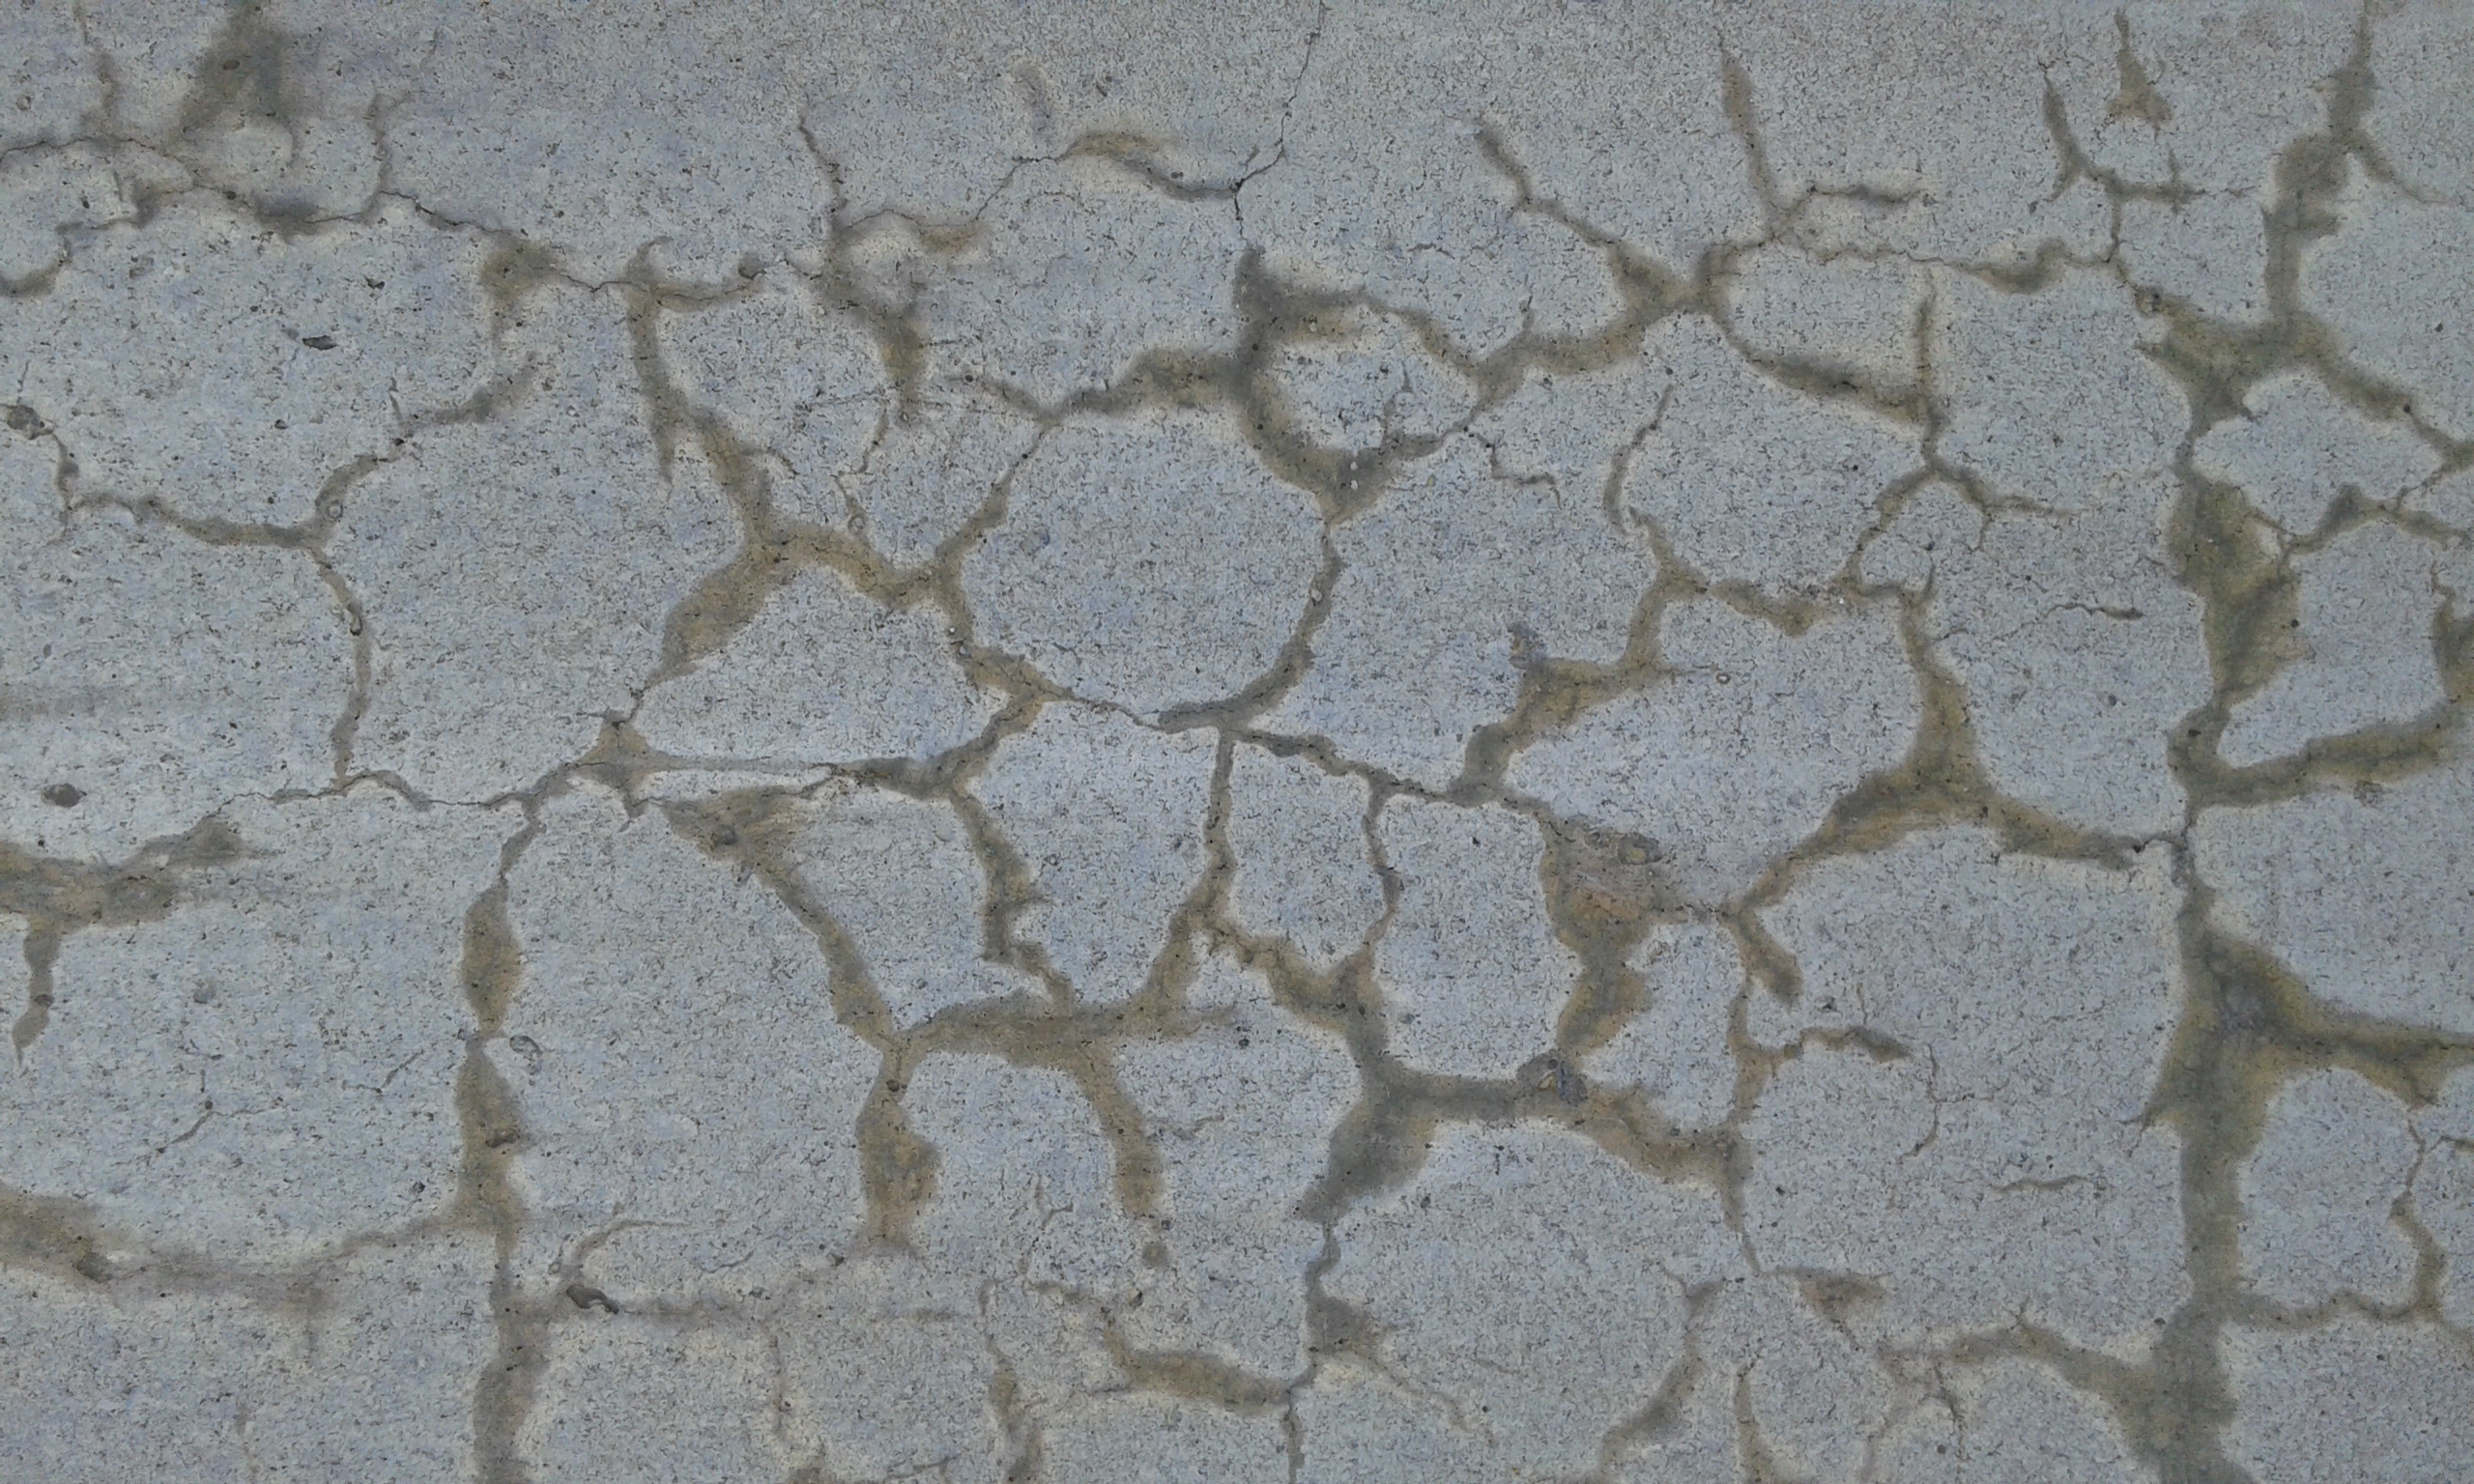 chemical reaction in concrete - Deterioration of Concrete Its Causes and Prevention